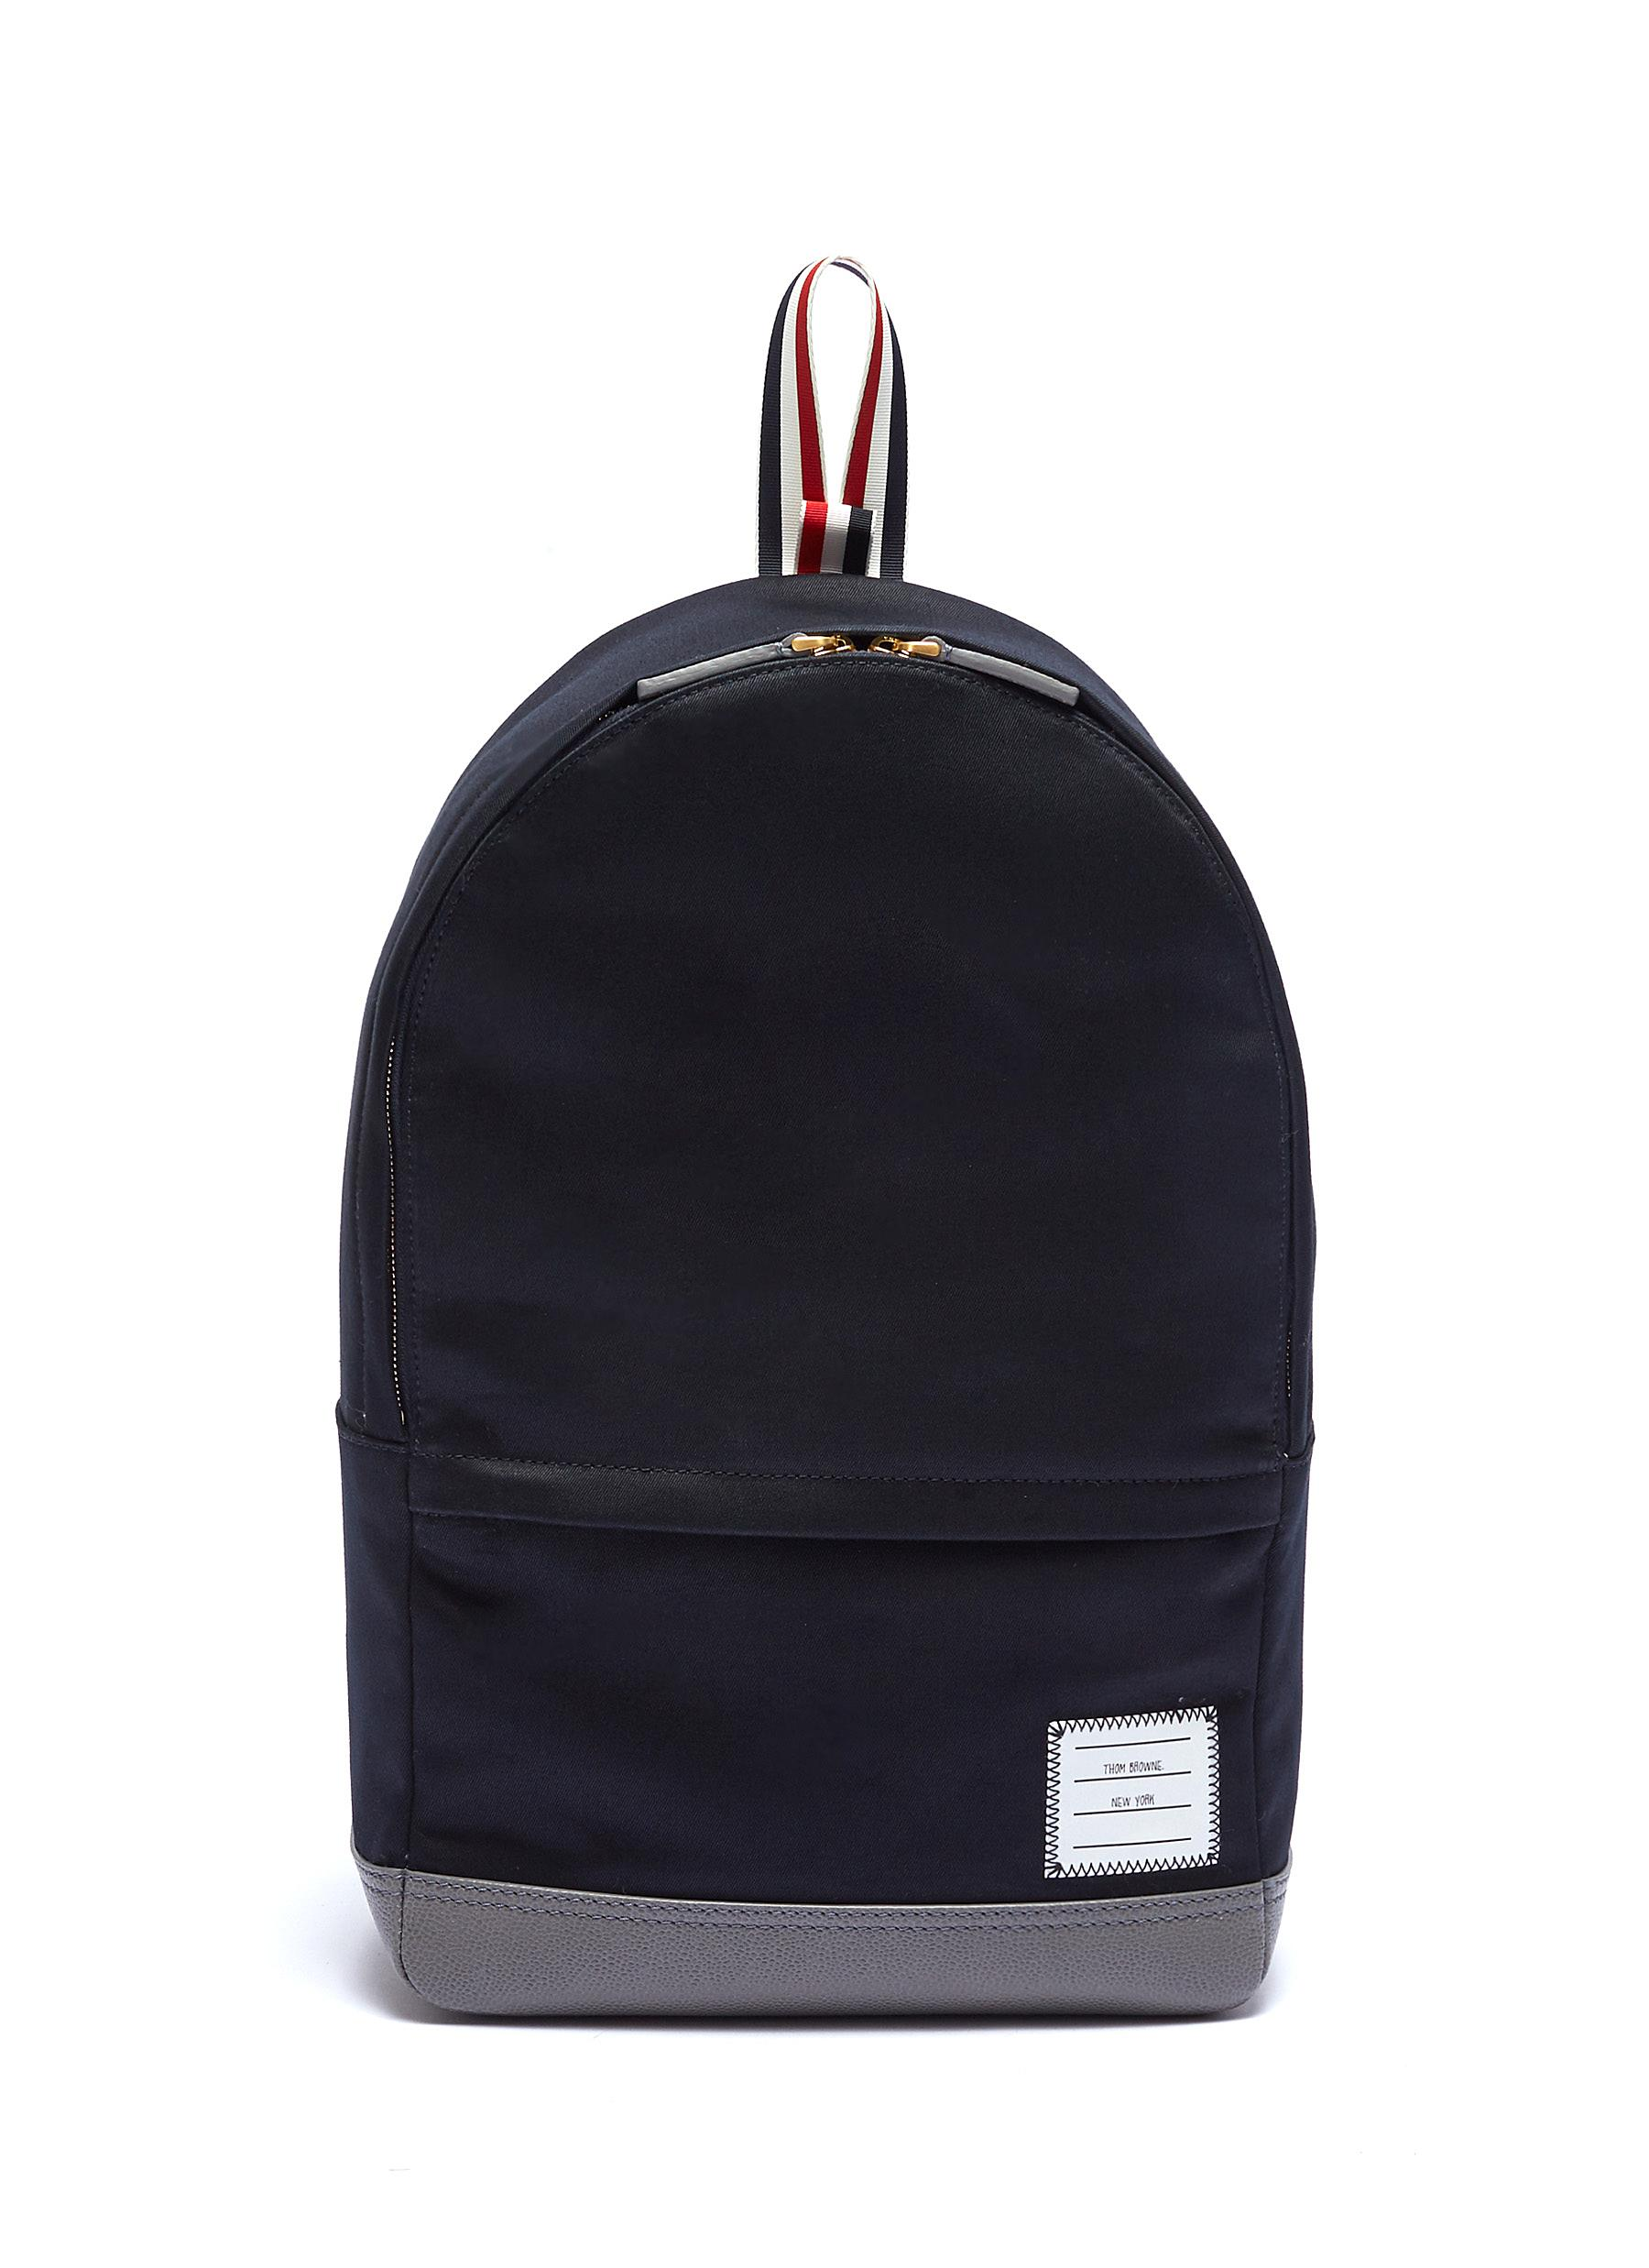 01a844ba8b6f Main View - Click To Enlarge - Thom Browne - Stripe handle twill backpack